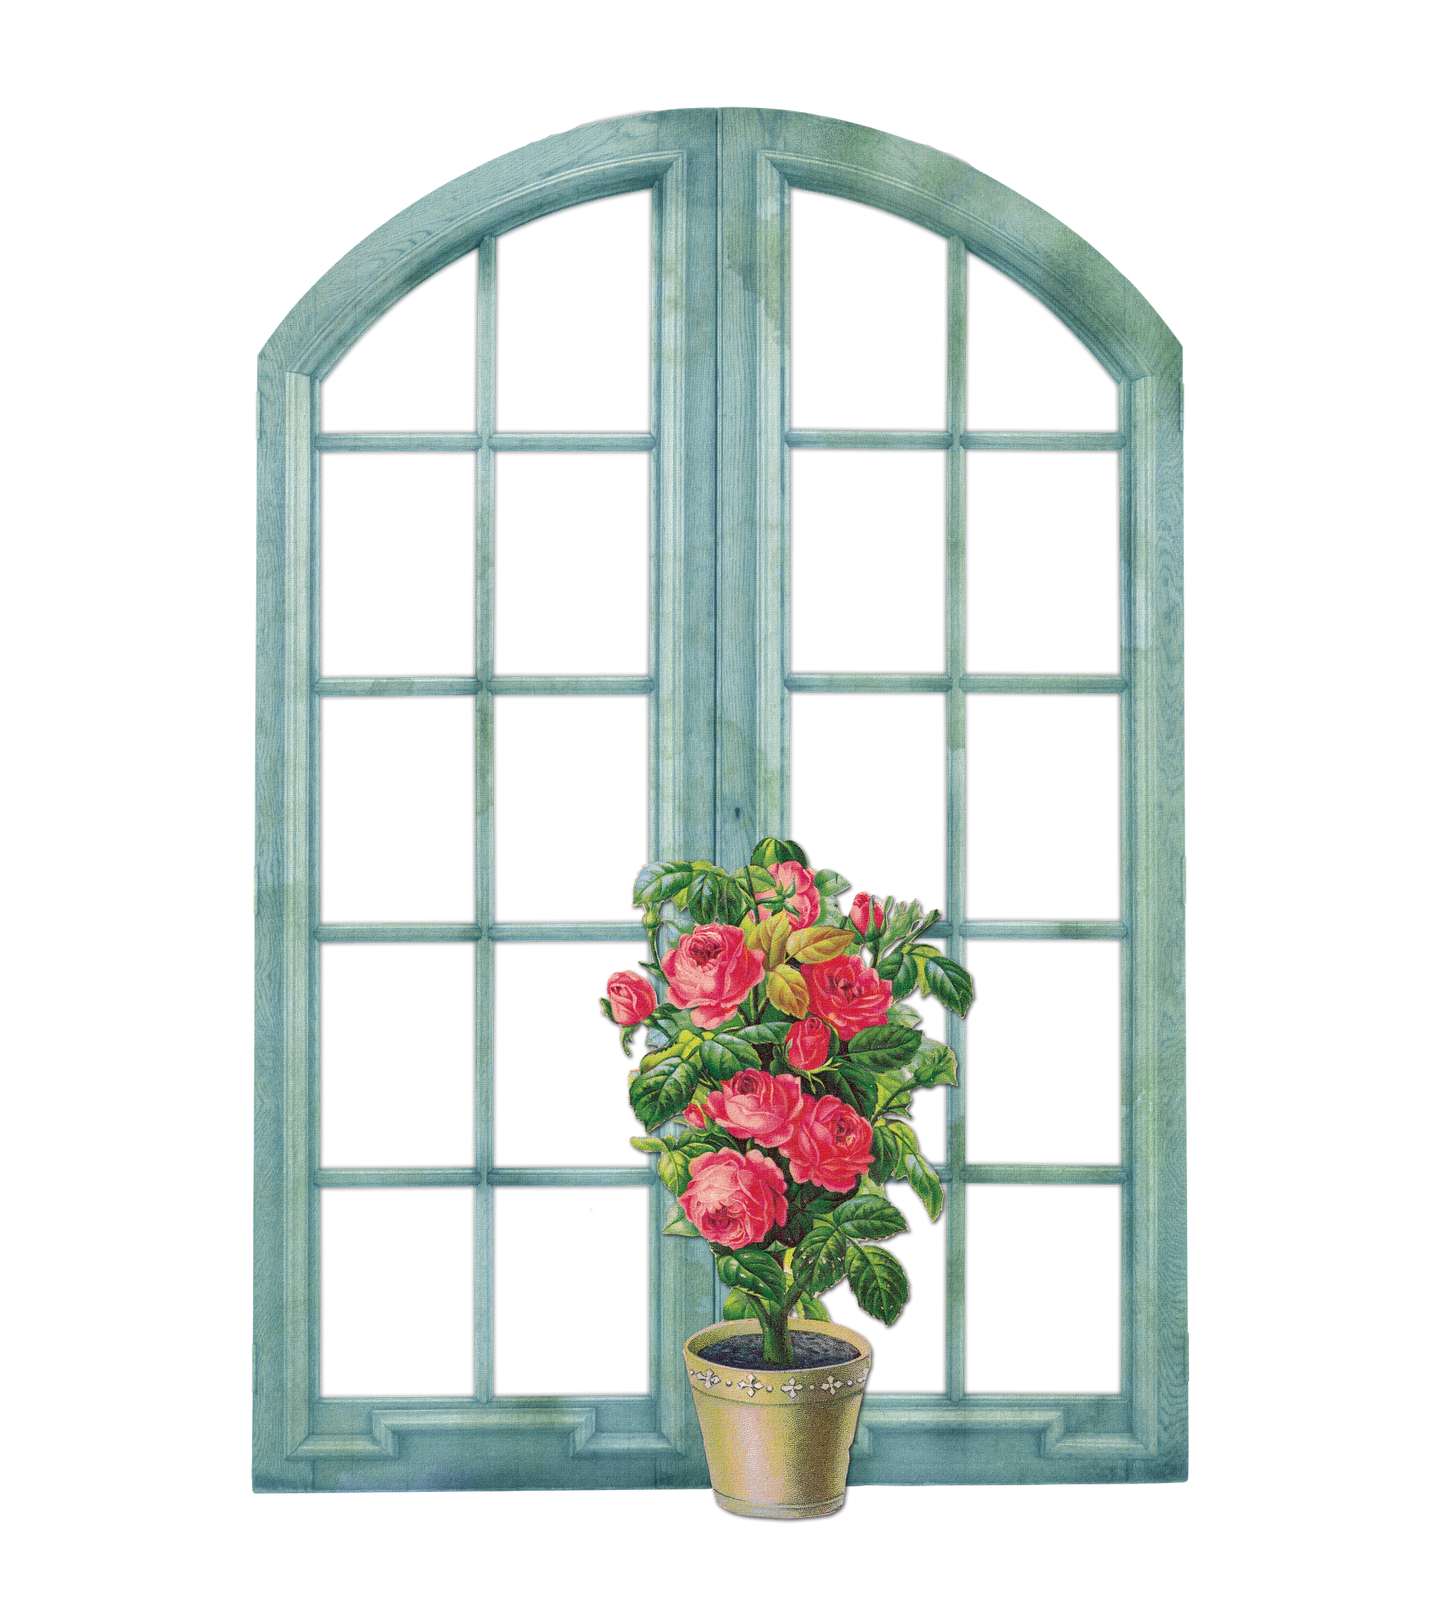 Floral theme crafting pinterest. Furniture clipart gingerbread house window